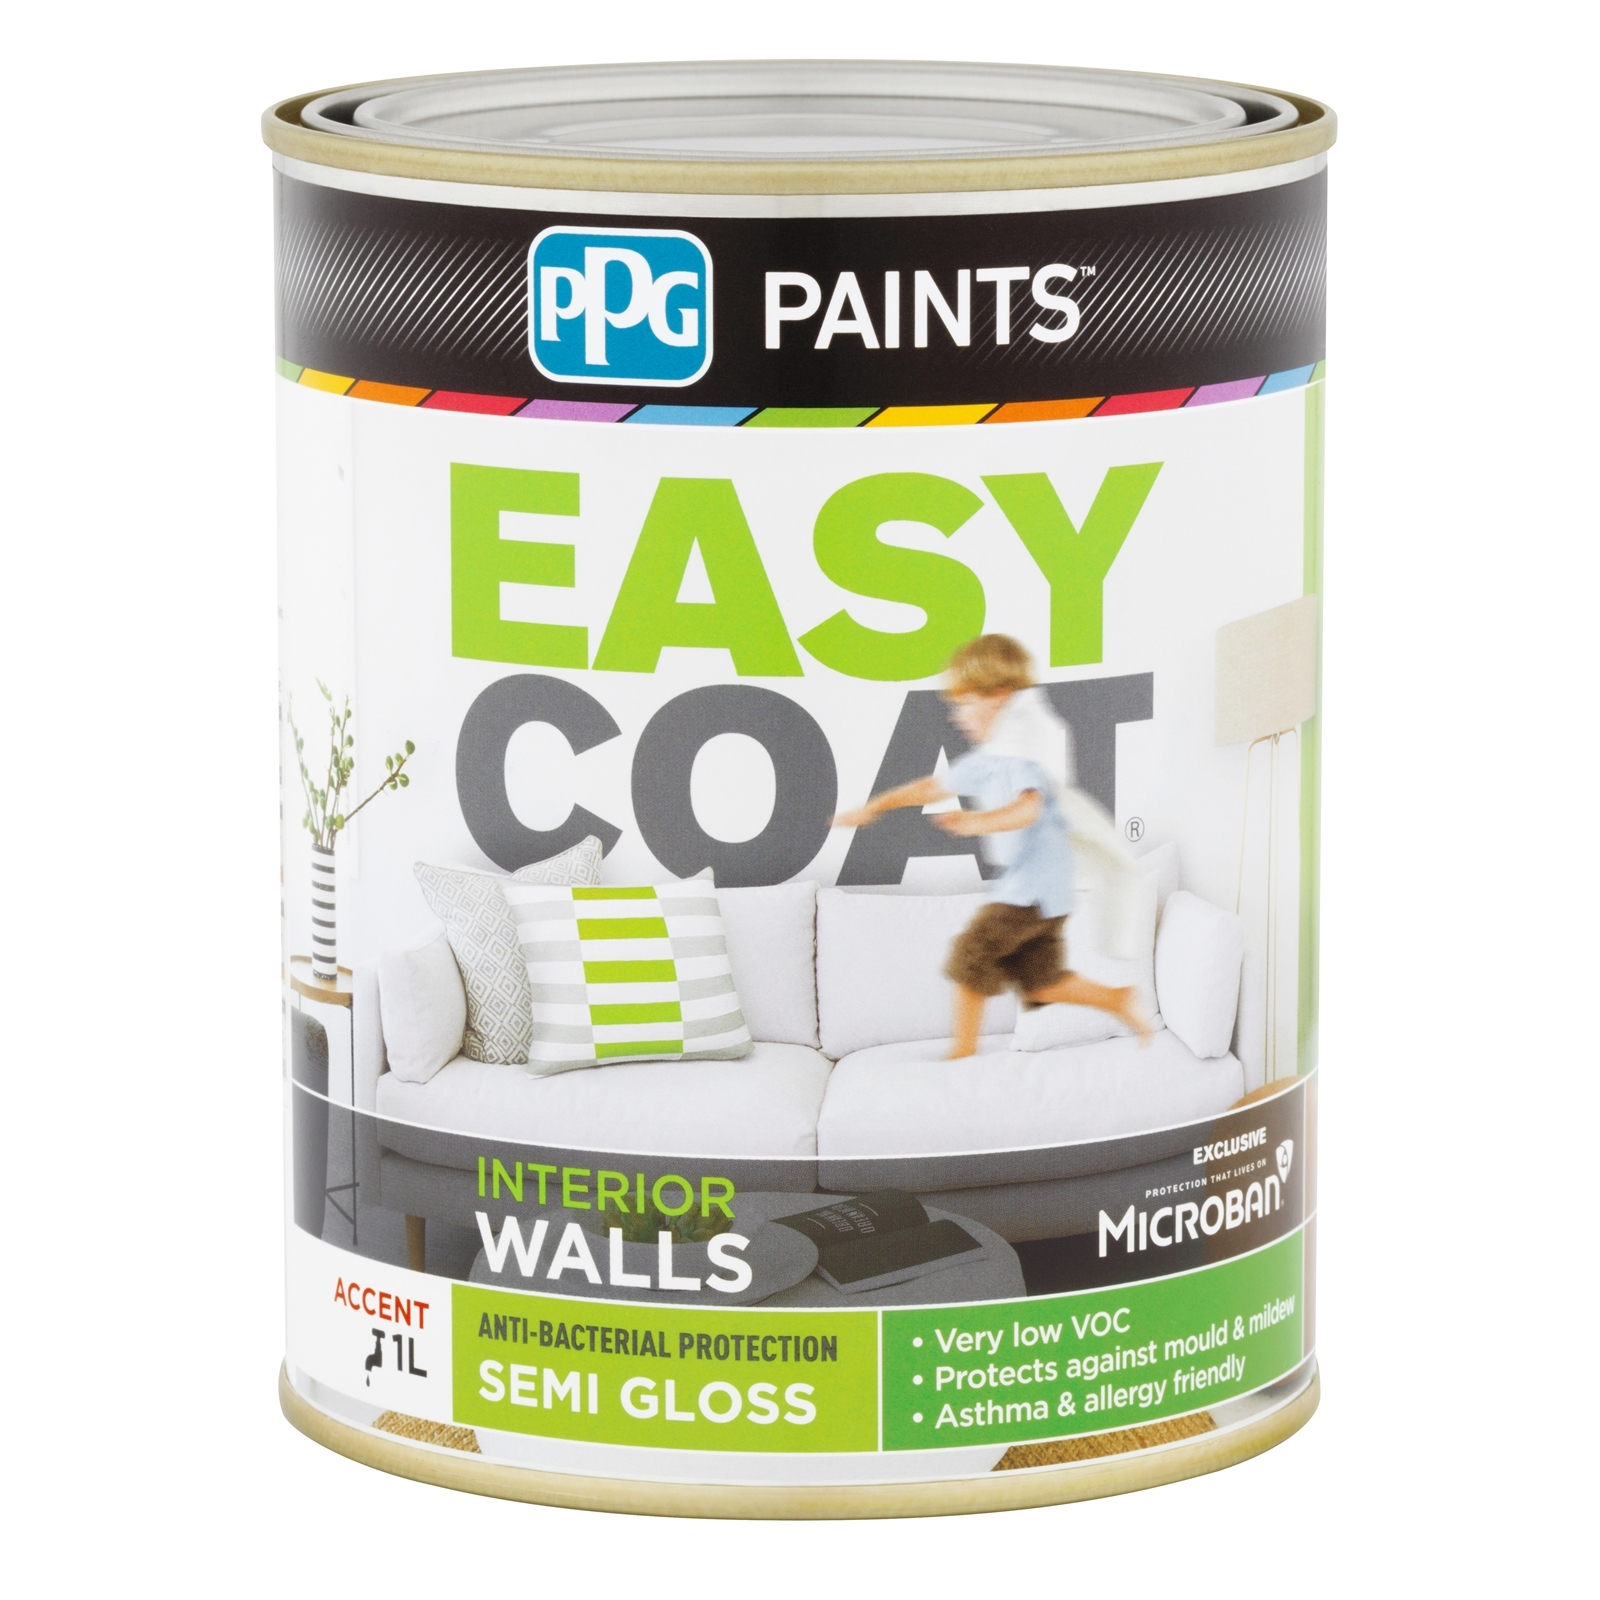 PPG Paints 1L Accent Semi Gloss Easycoat Interior Wall Paint